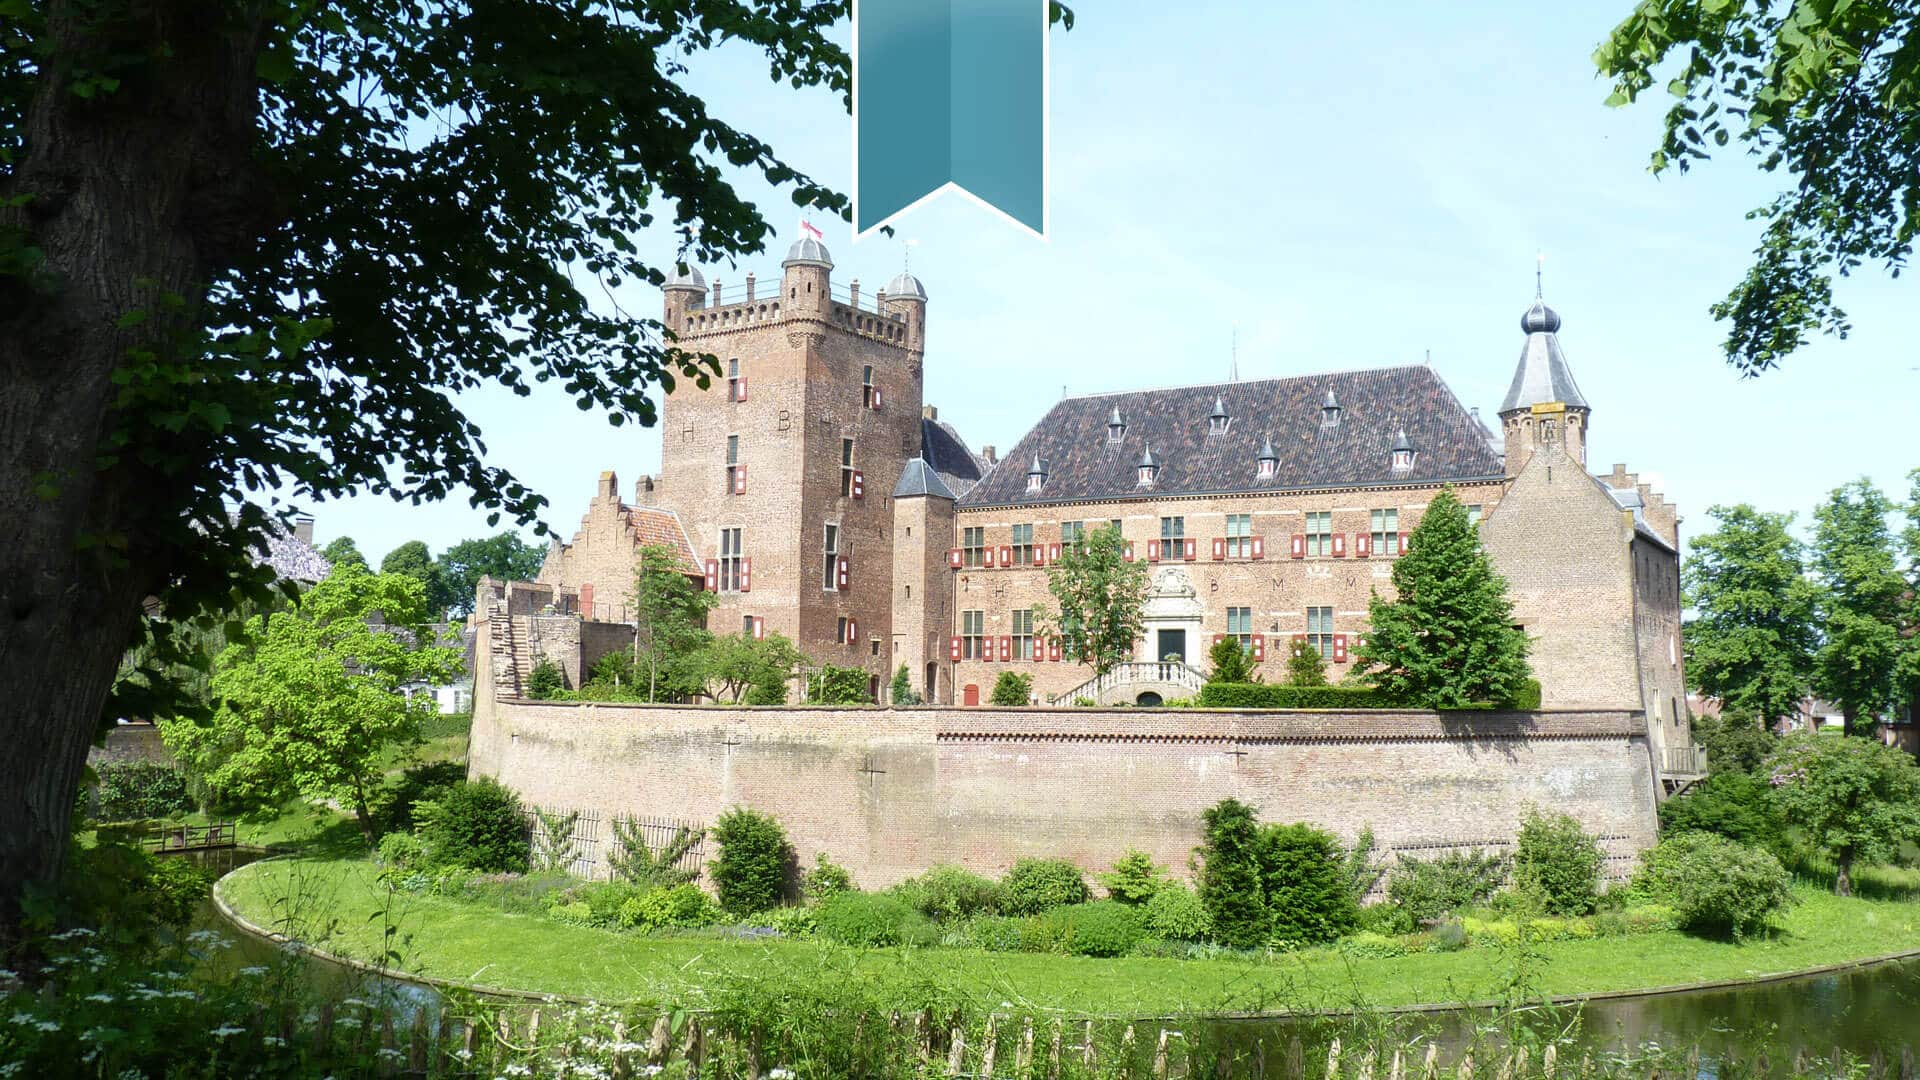 Welcome to Huis Bergh Castle